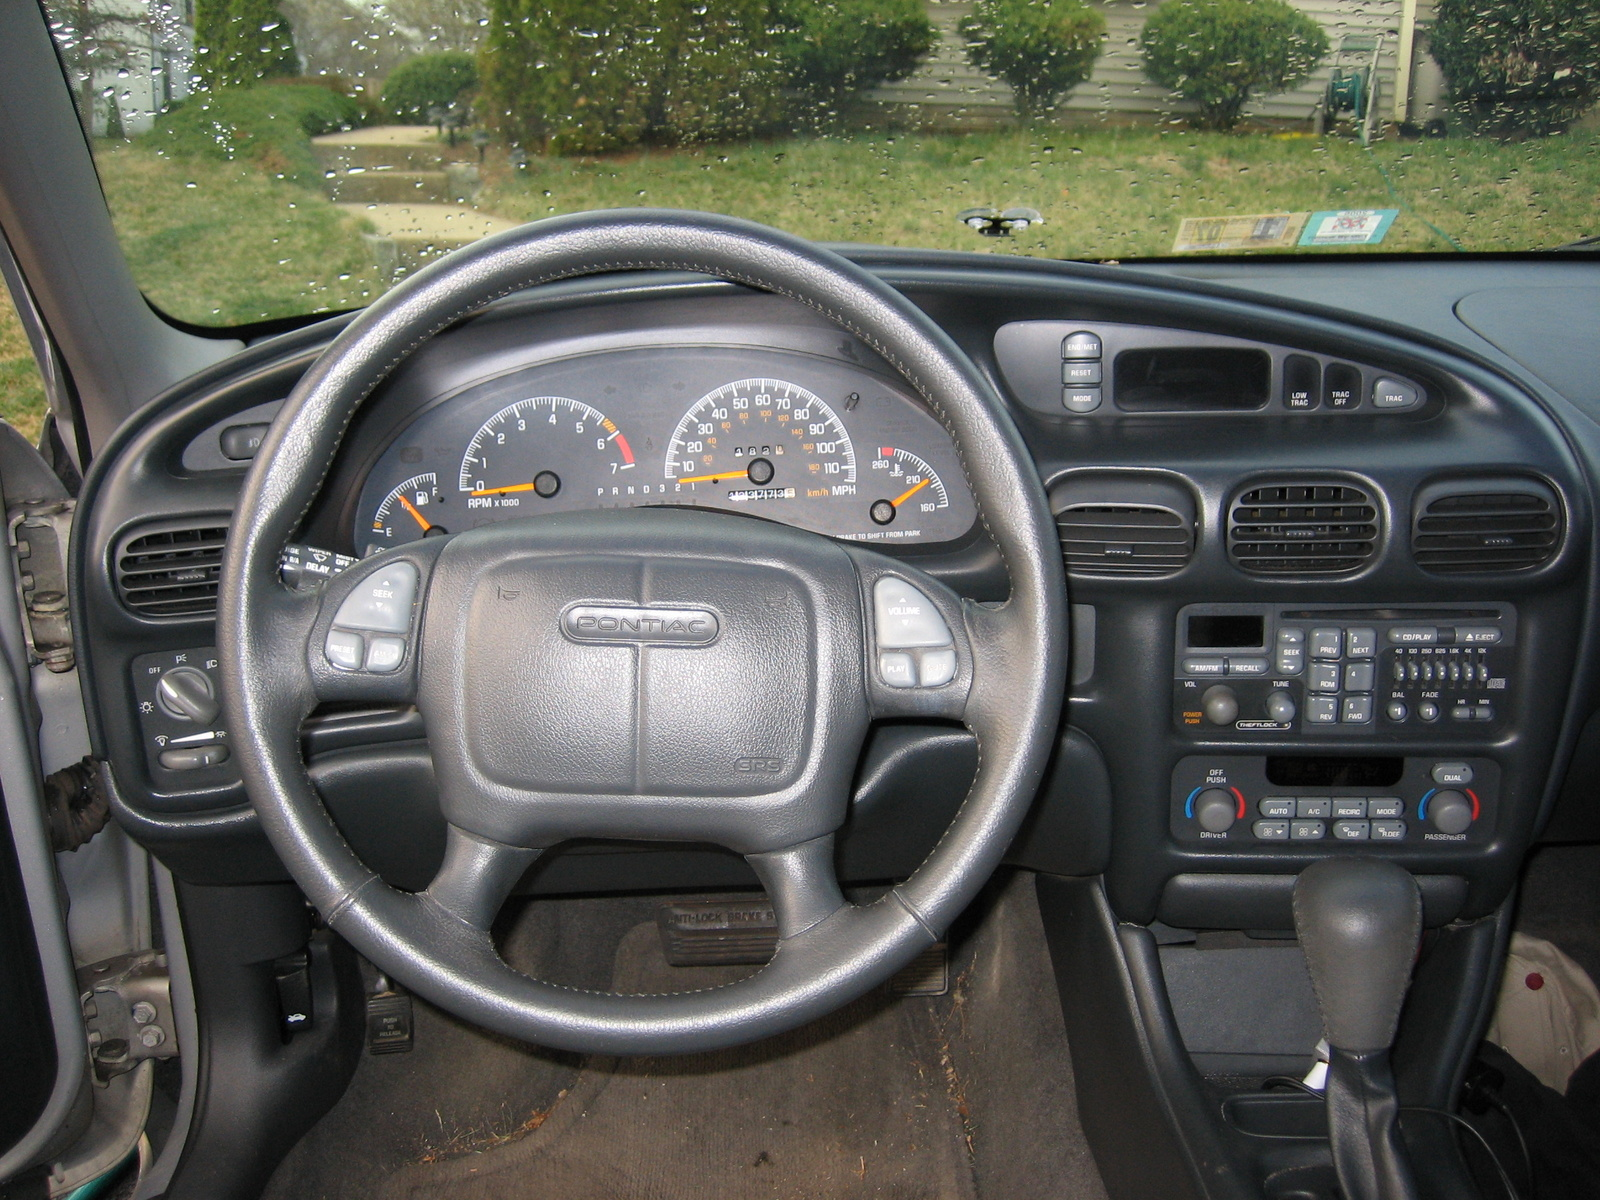 pontiac grand prix pontiac grand prix interior 3 jpg roadsmile com